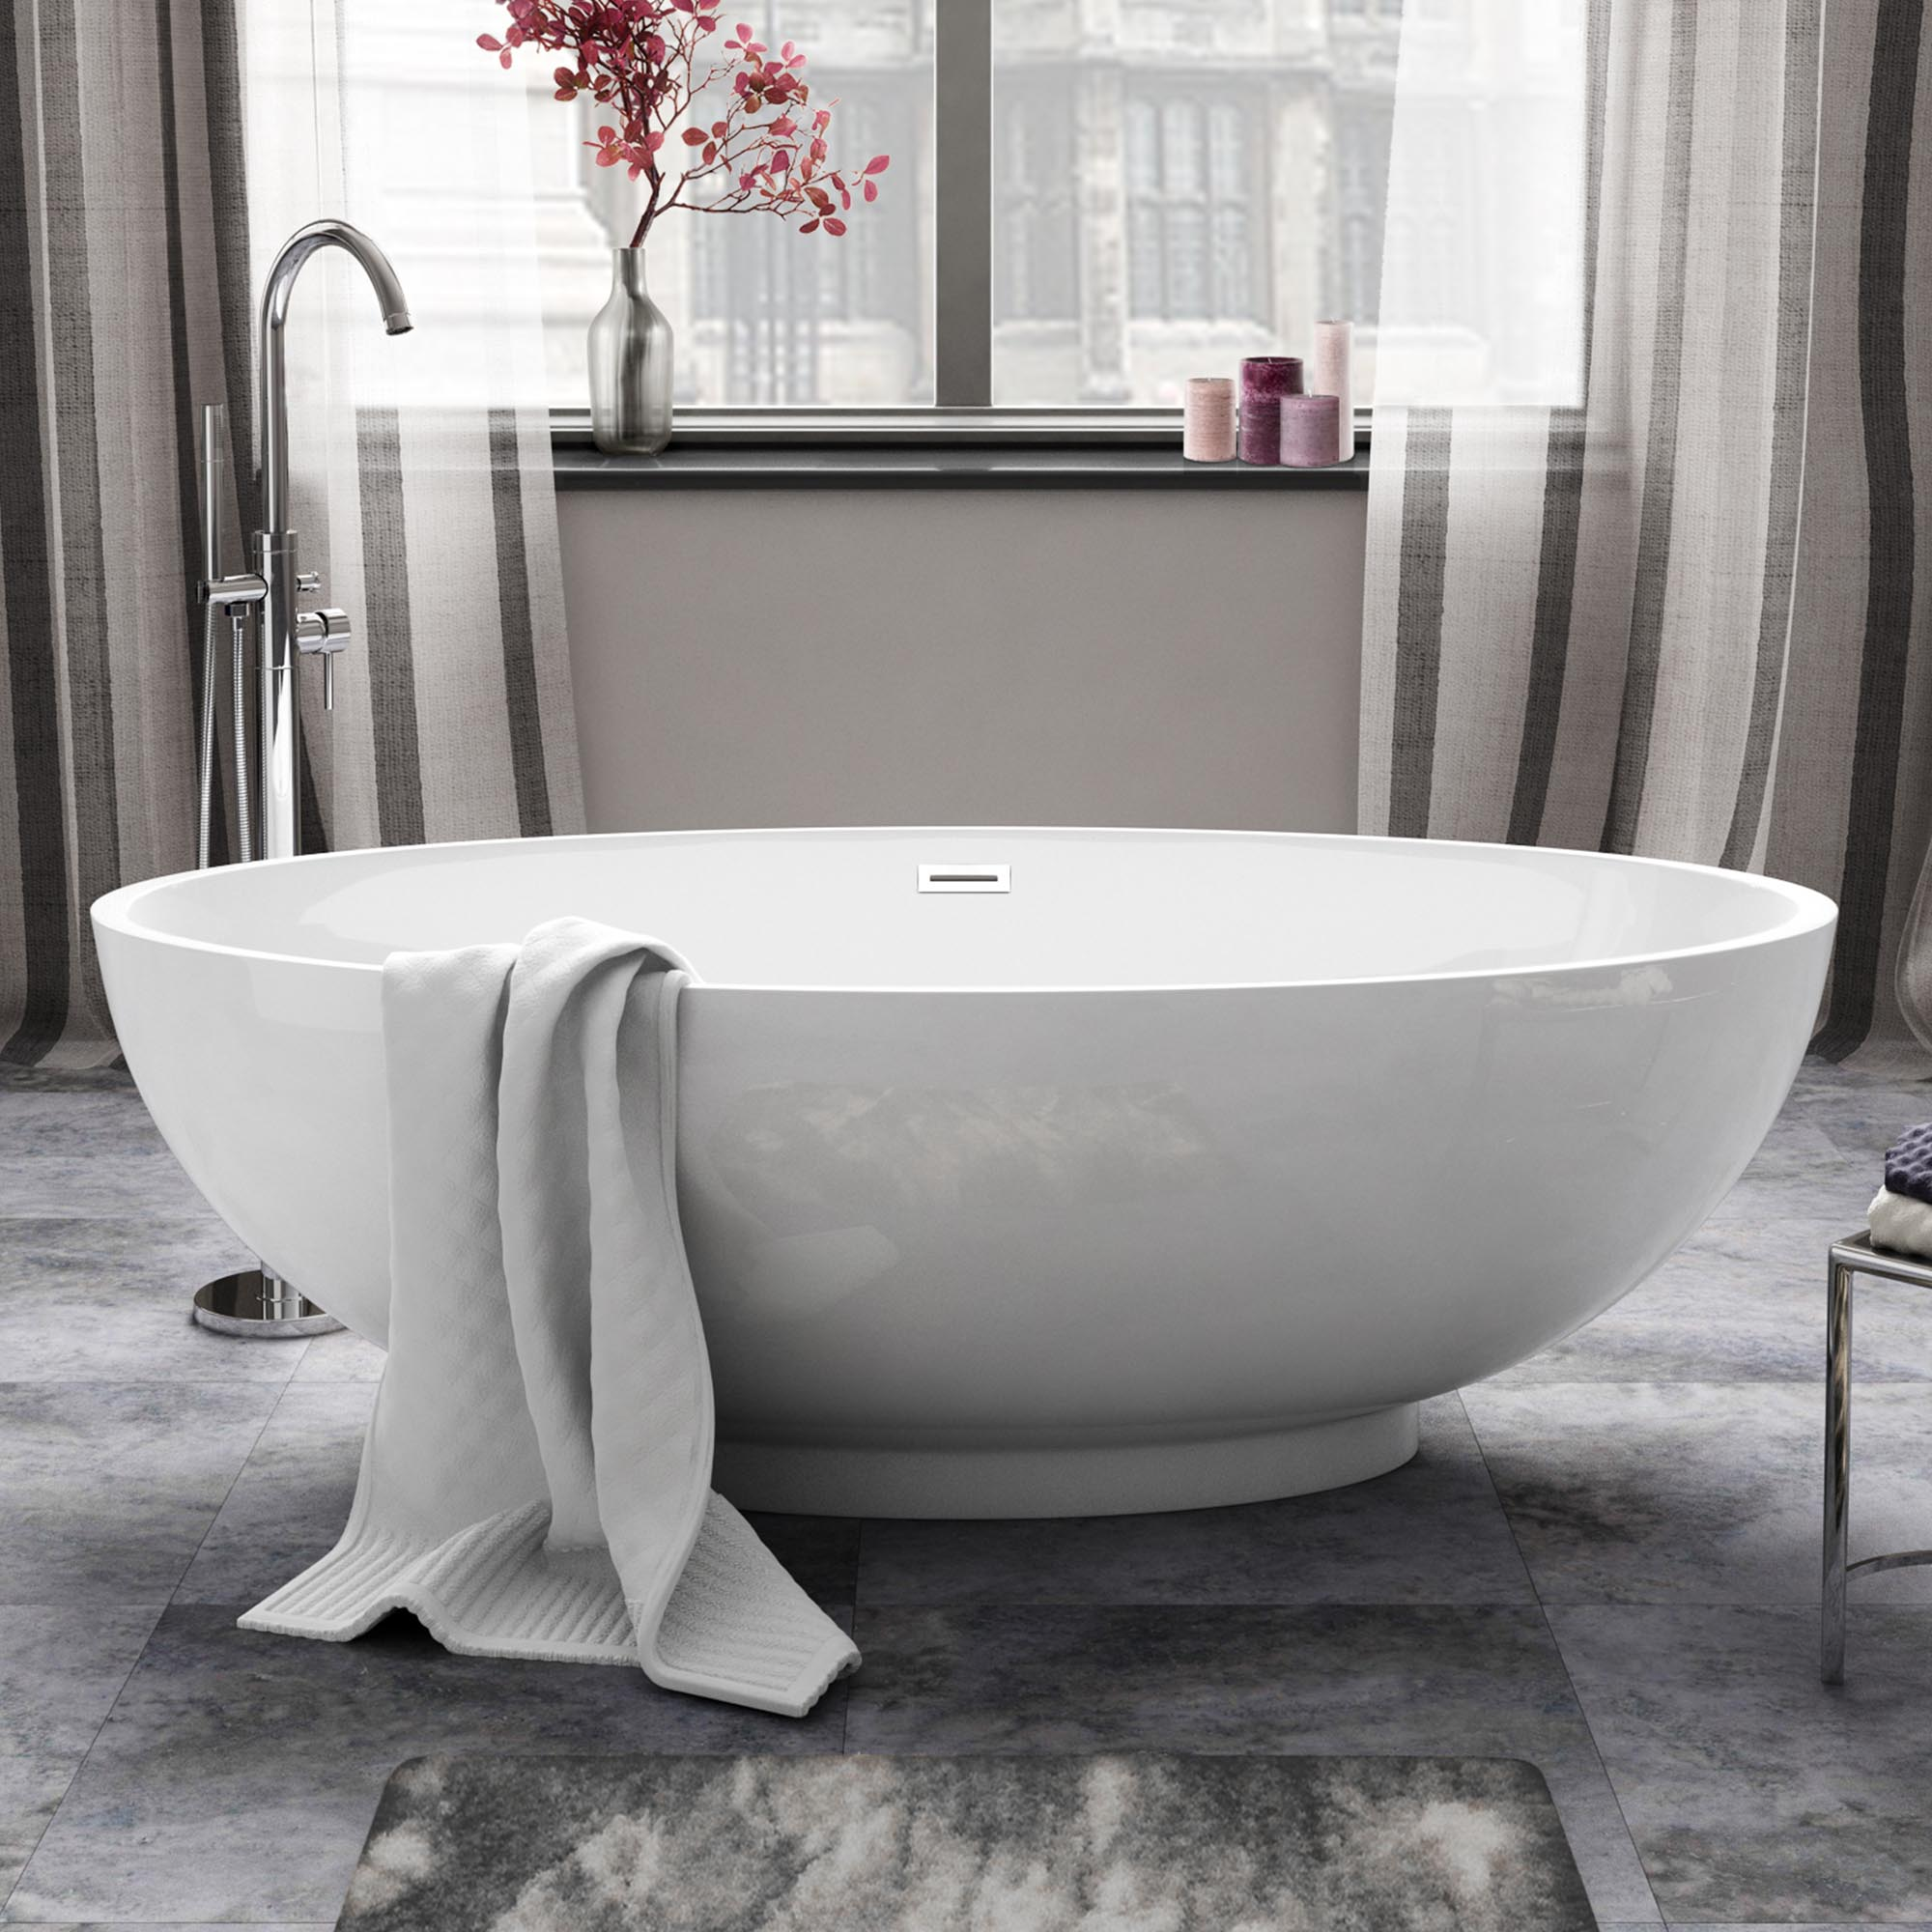 Designer bathroom freestanding modern roll top baths ebay for Oversized baths